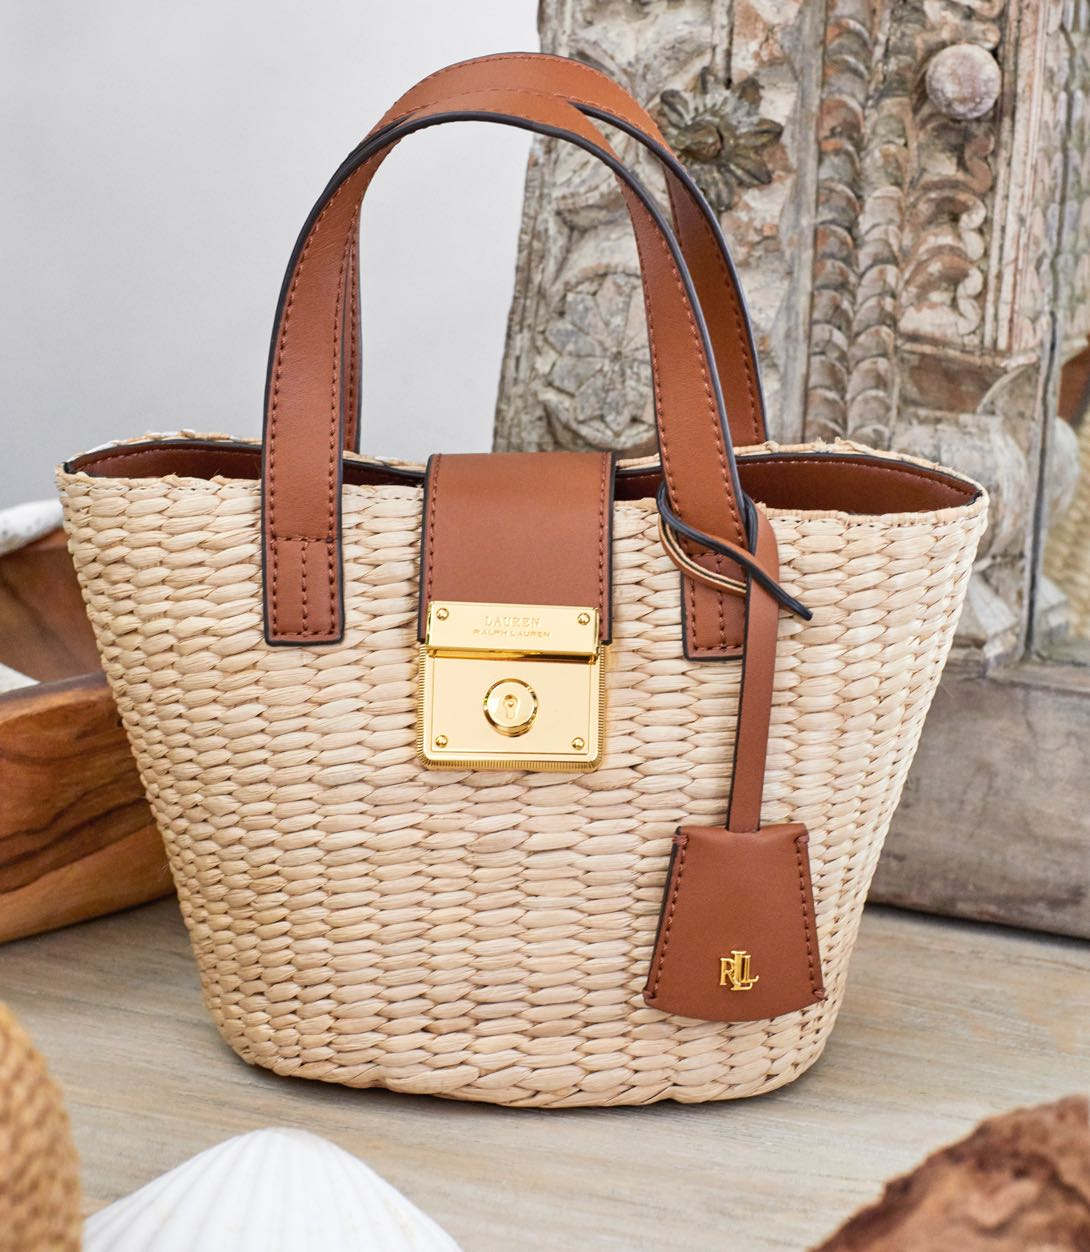 Woven straw bag with brown leather handles.